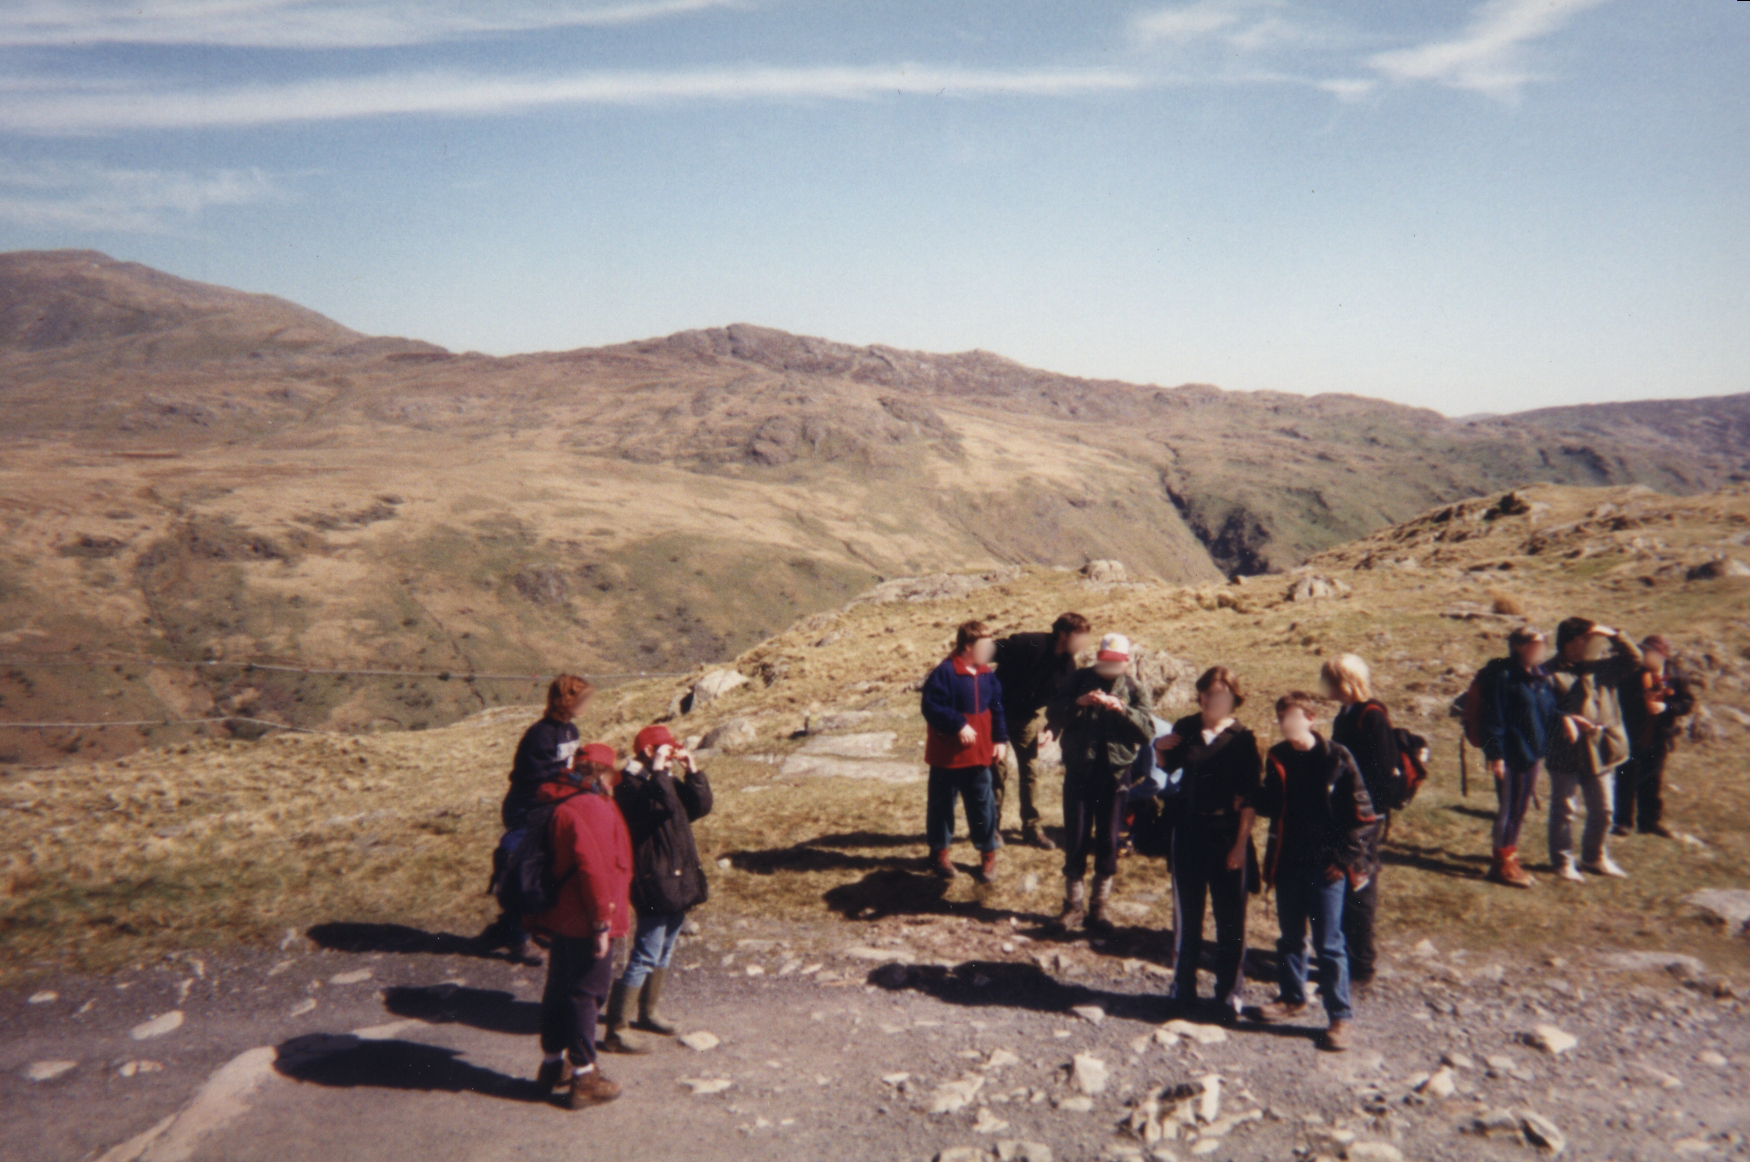 Group photo of teenagers and school staff, their faces blurred out for privacy, admiring the mountainous scenery surrounding them in Snowdonia.